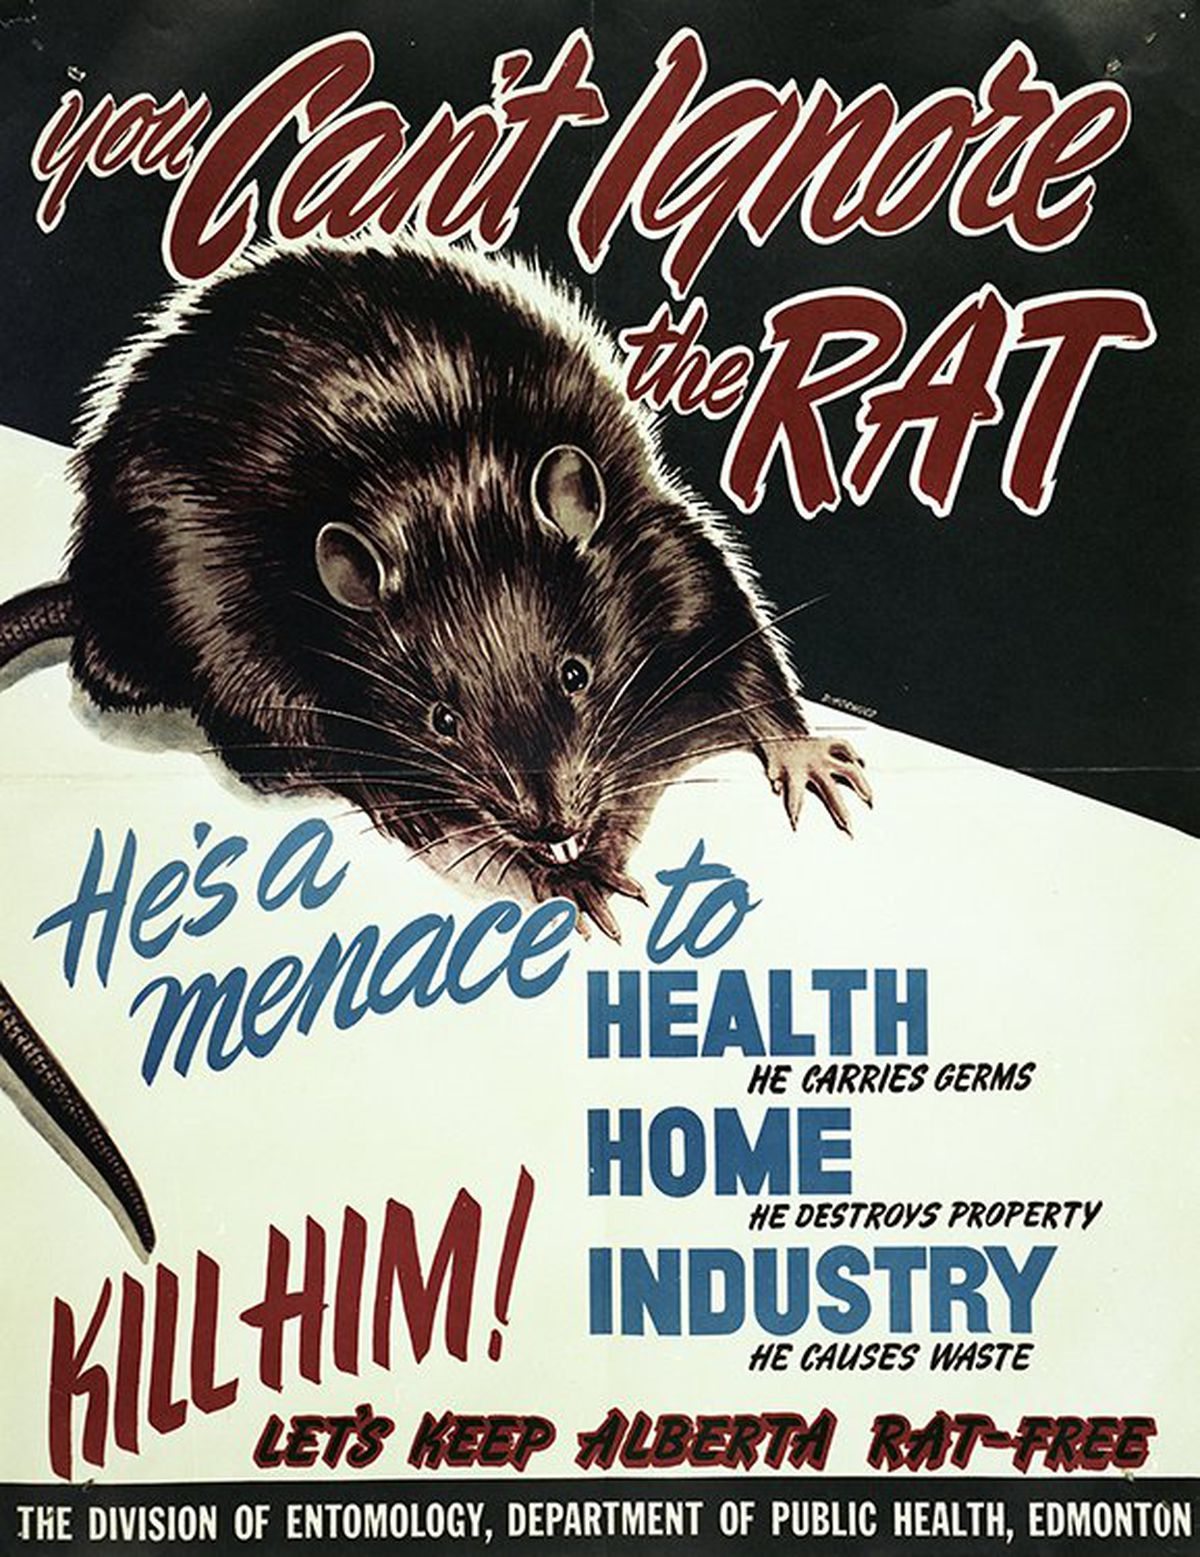 A rat awareness poster from the 1950s was part of the anti-rat public education campaign across the Canadian province of Alberta. (Courtesy Government of Alberta)